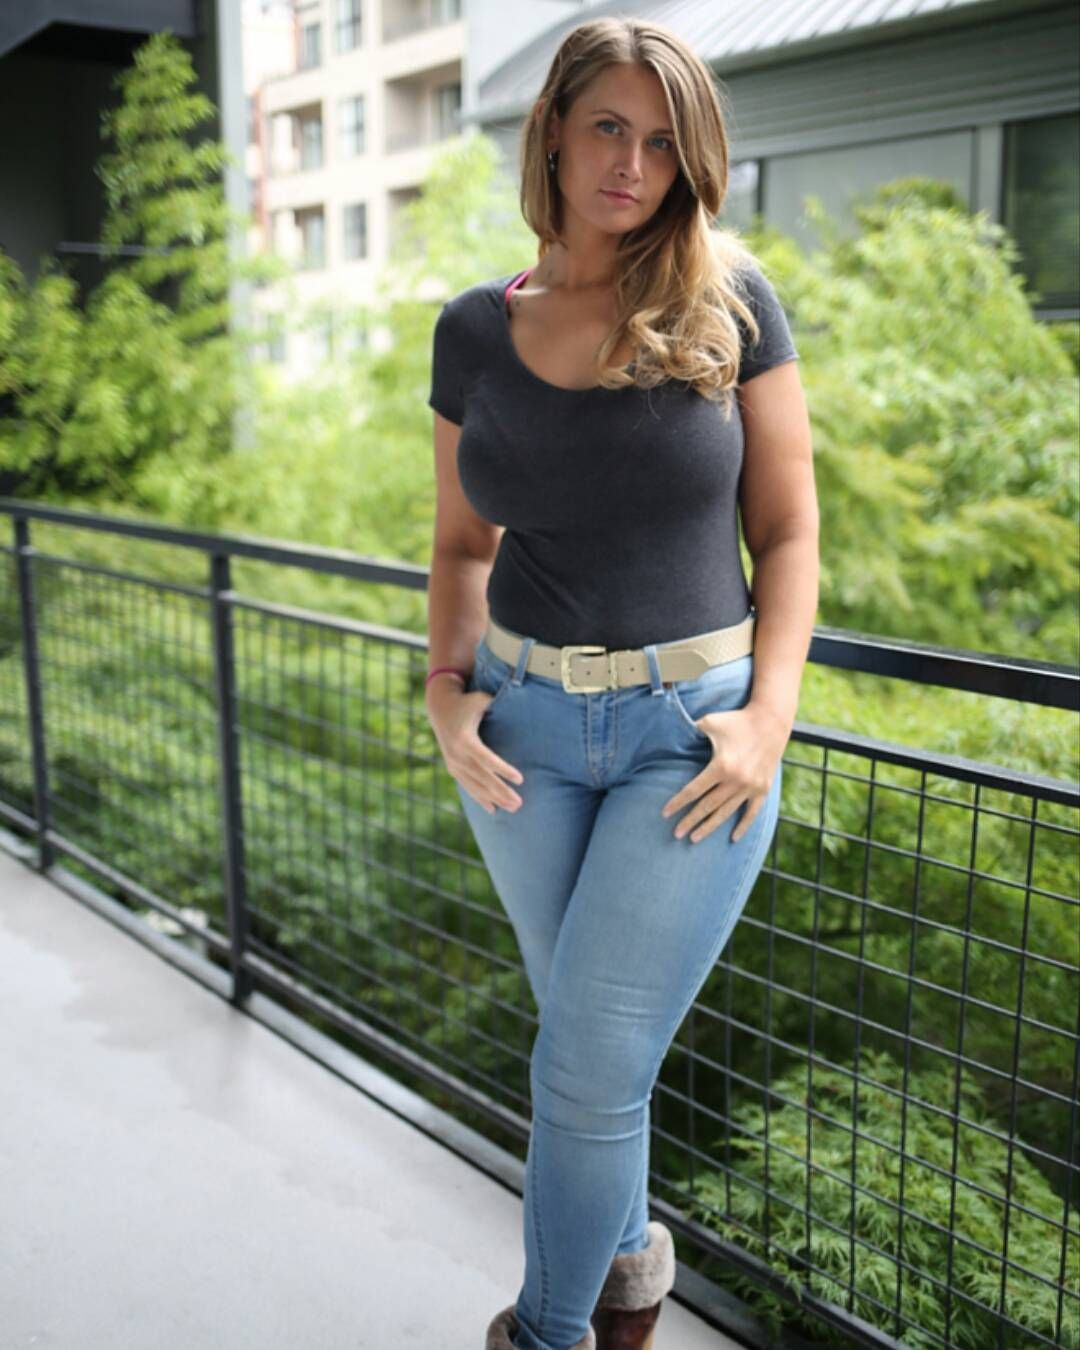 Image result for qvc plus size model taylor